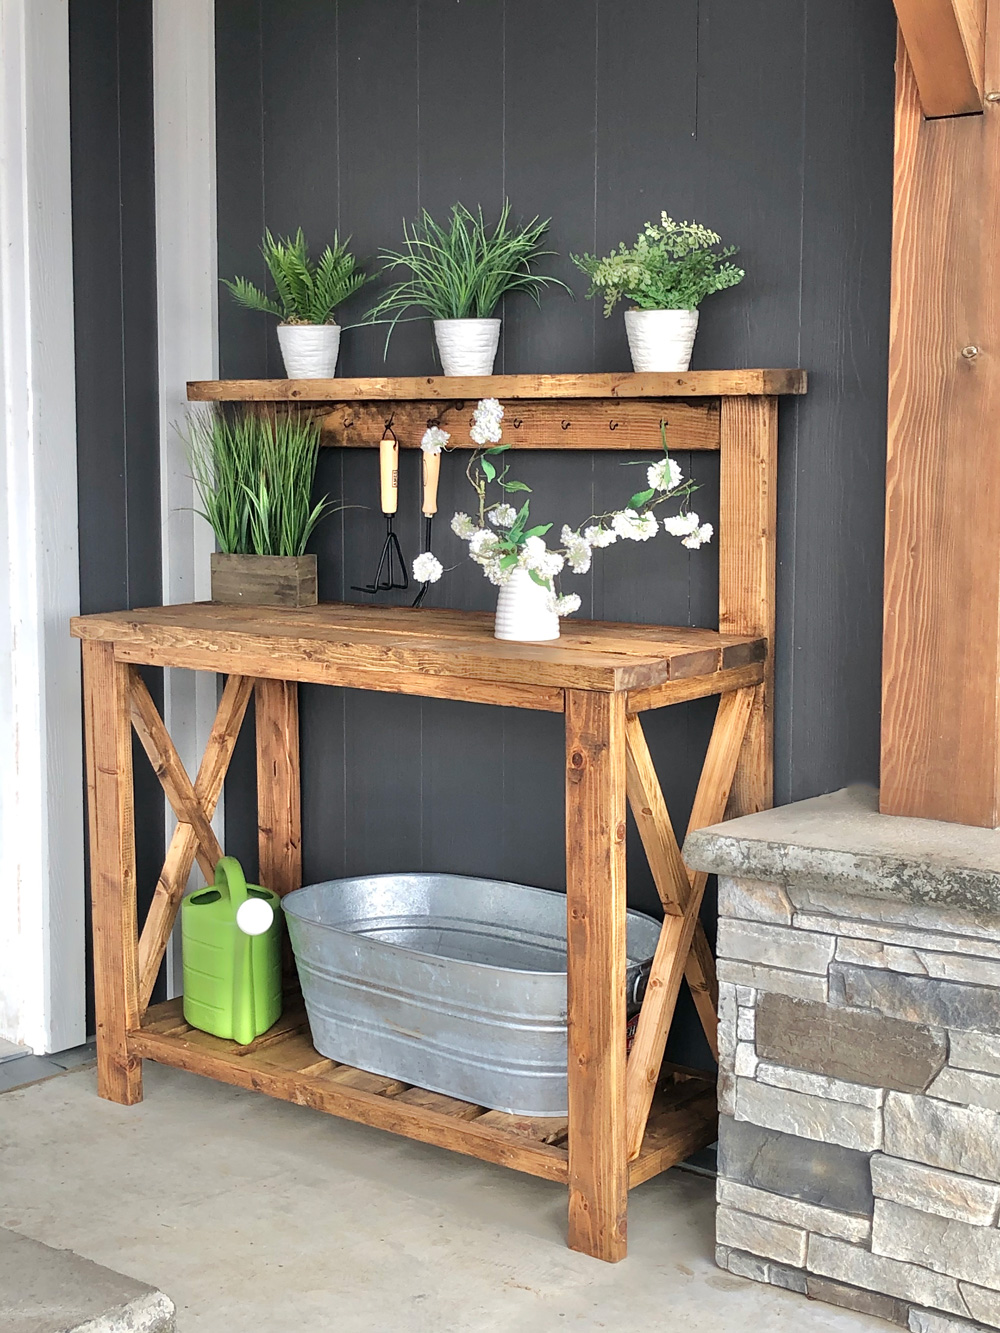 Farmhouse Potting Bench In 2020 Potting Bench Diy Furniture Wood Projects